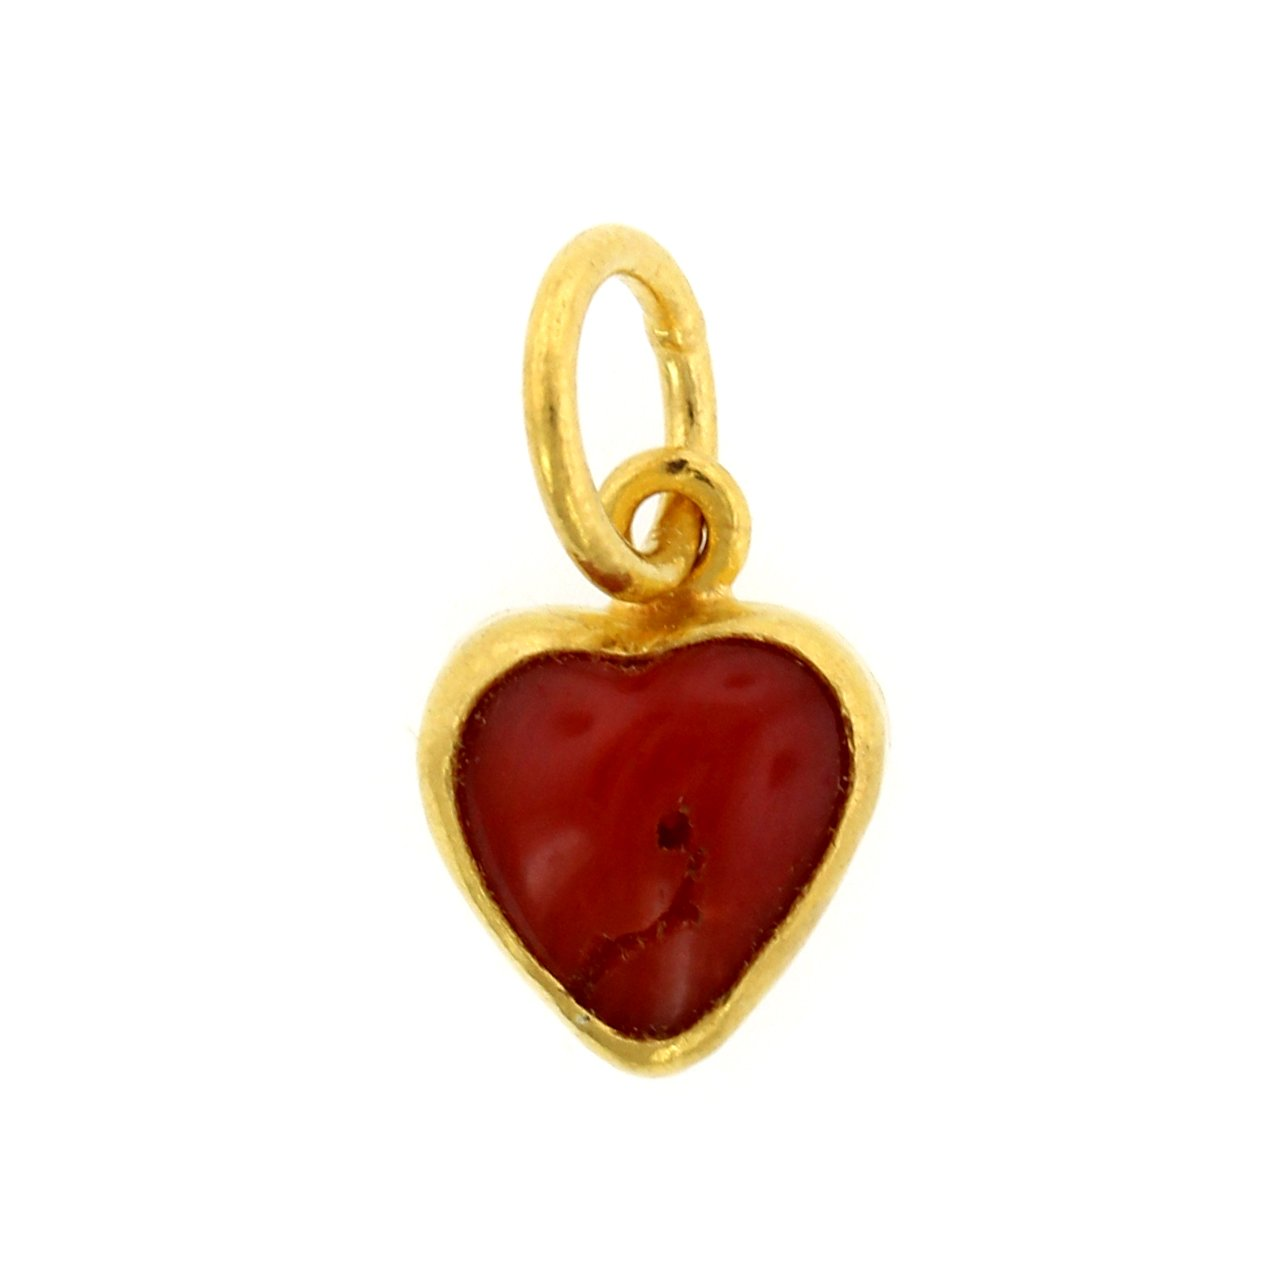 24K Yellow Gold Coral Heart Charm